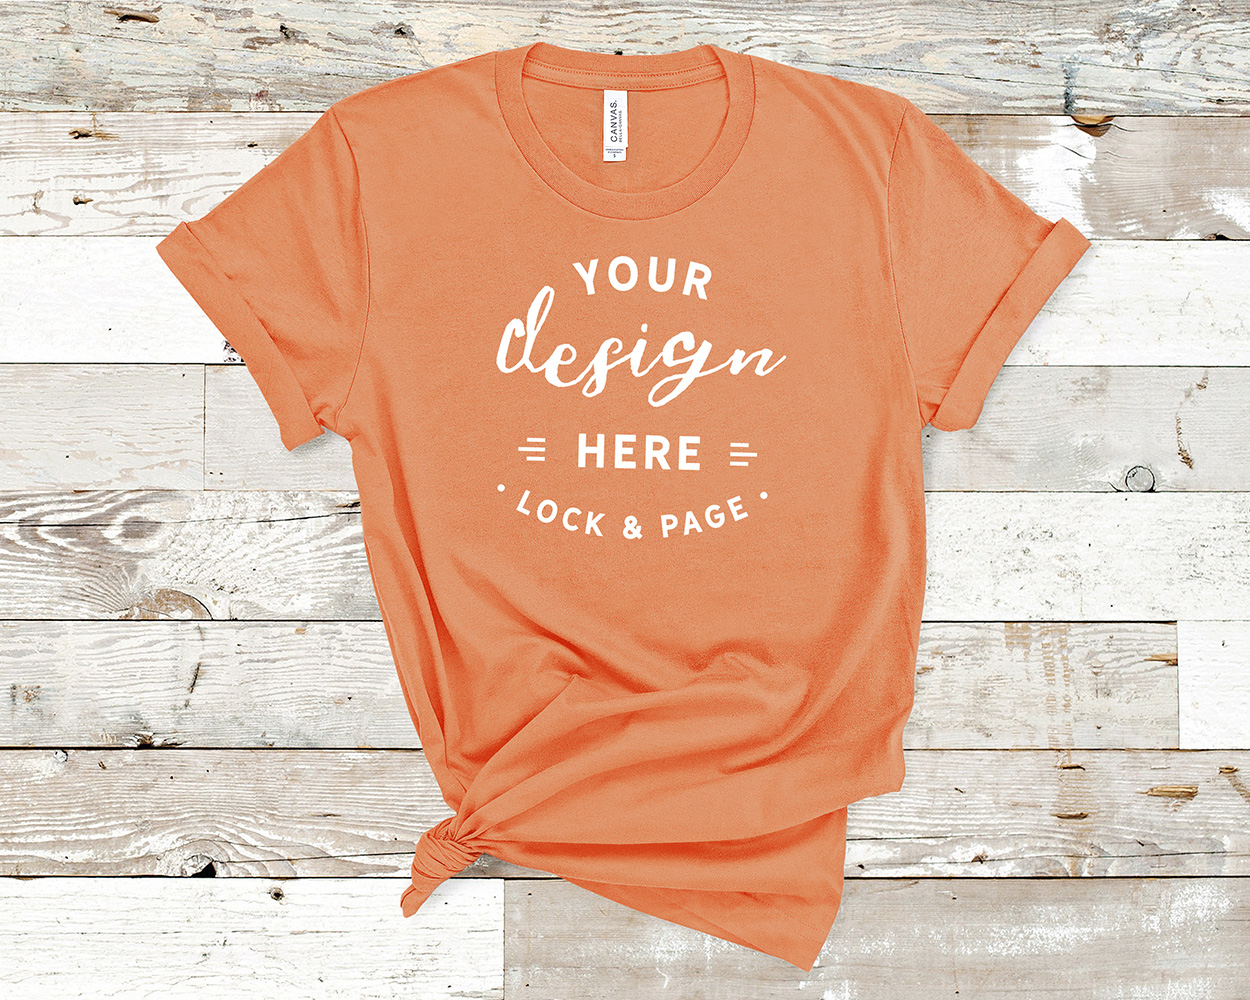 Bella Canvas 3001 Mockup T-Shirt Bundle All Colors On Wood example image 10